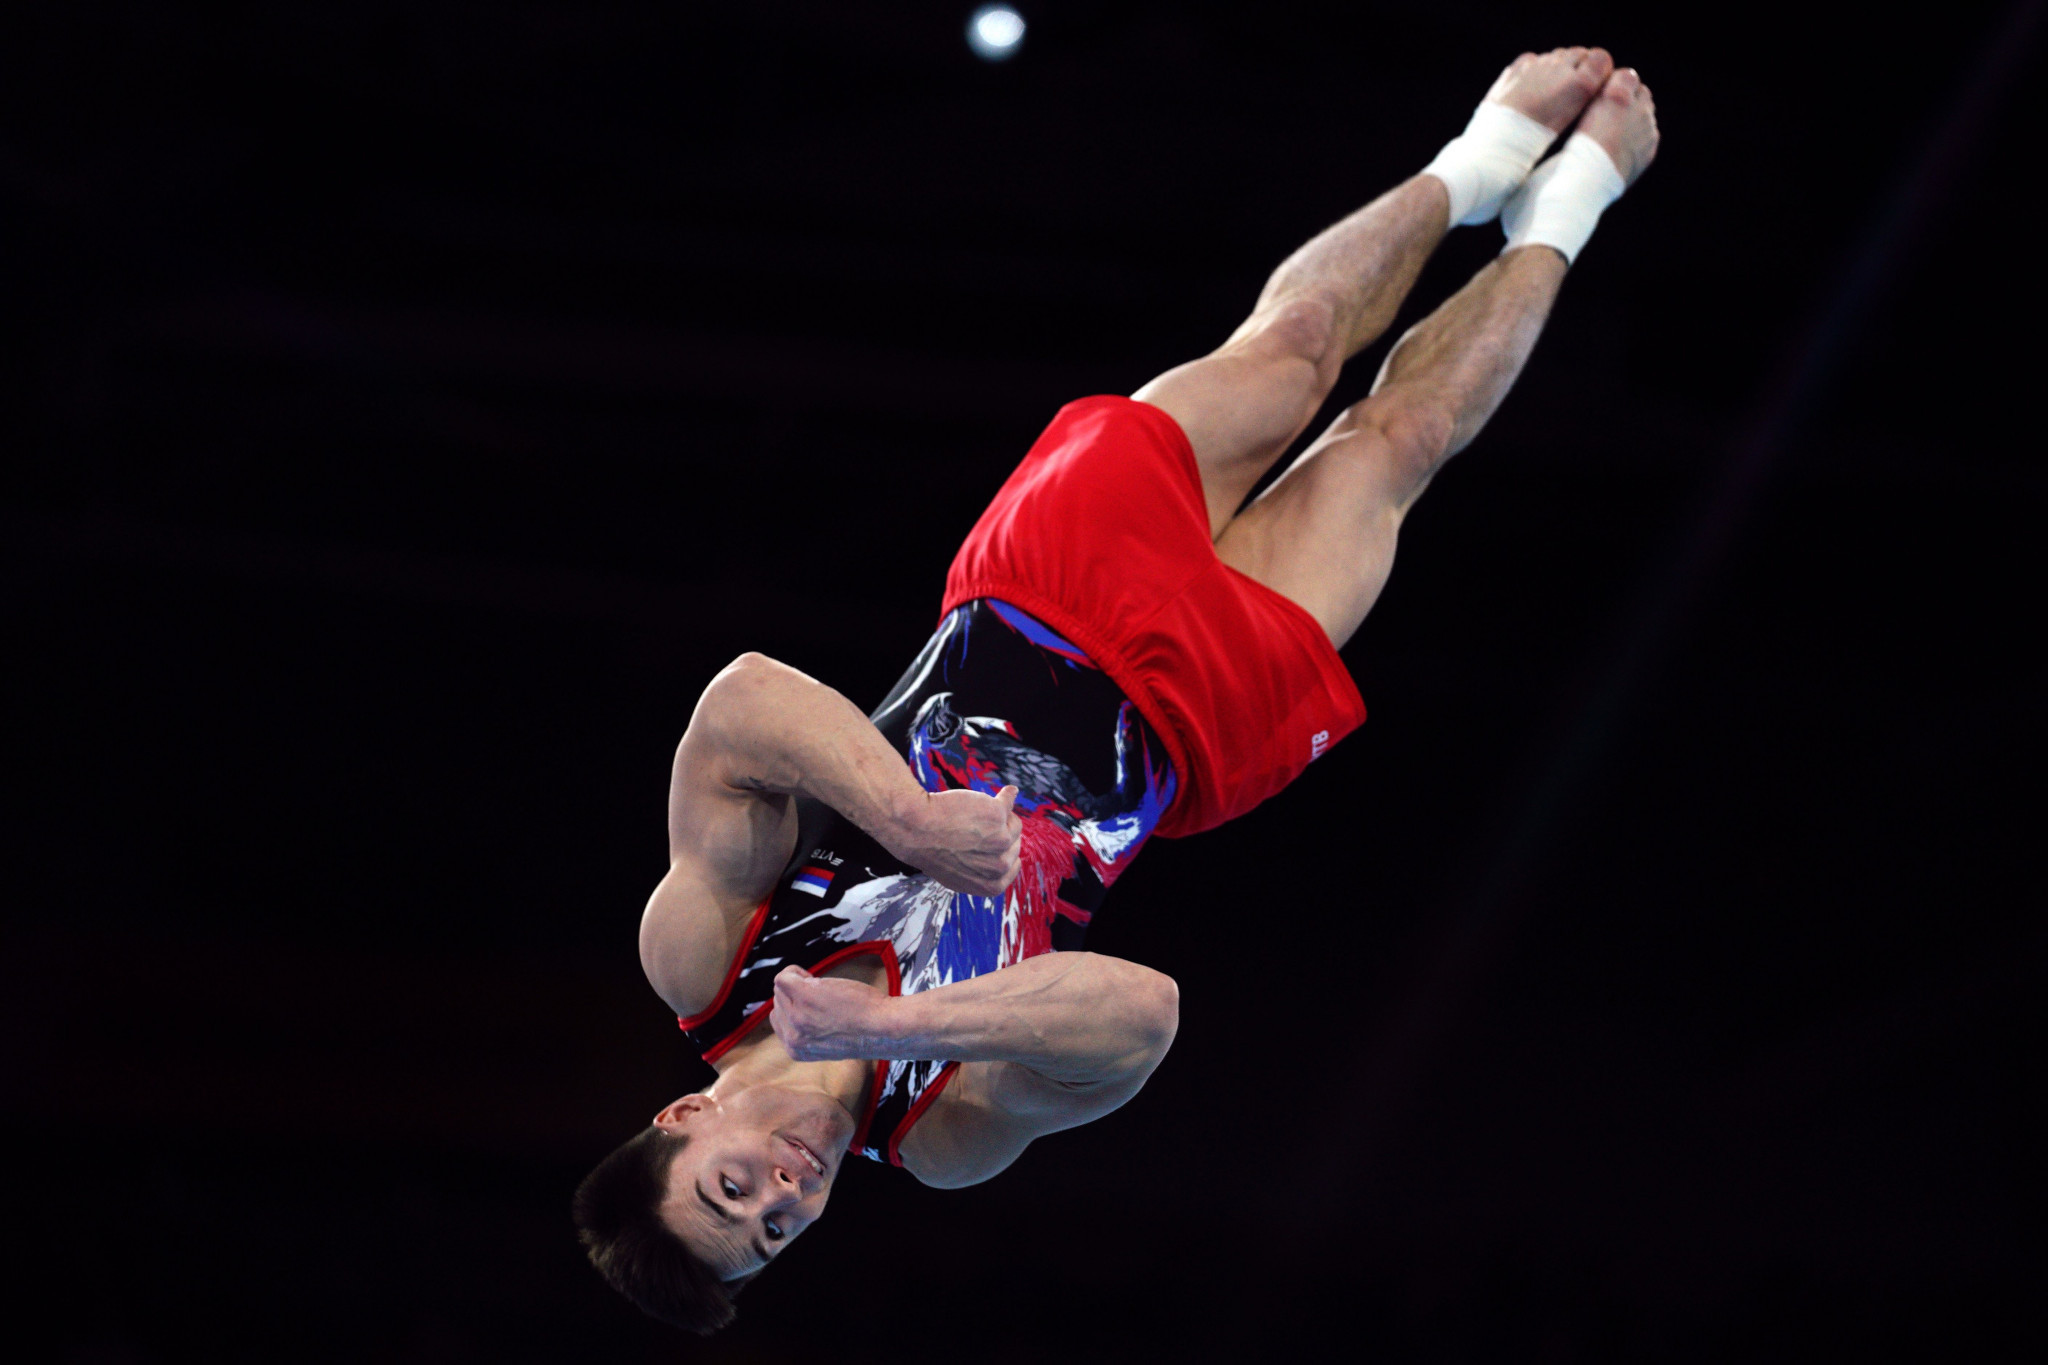 Nagornyy tops men's all-around qualifying at Artistic Gymnastics World Championships